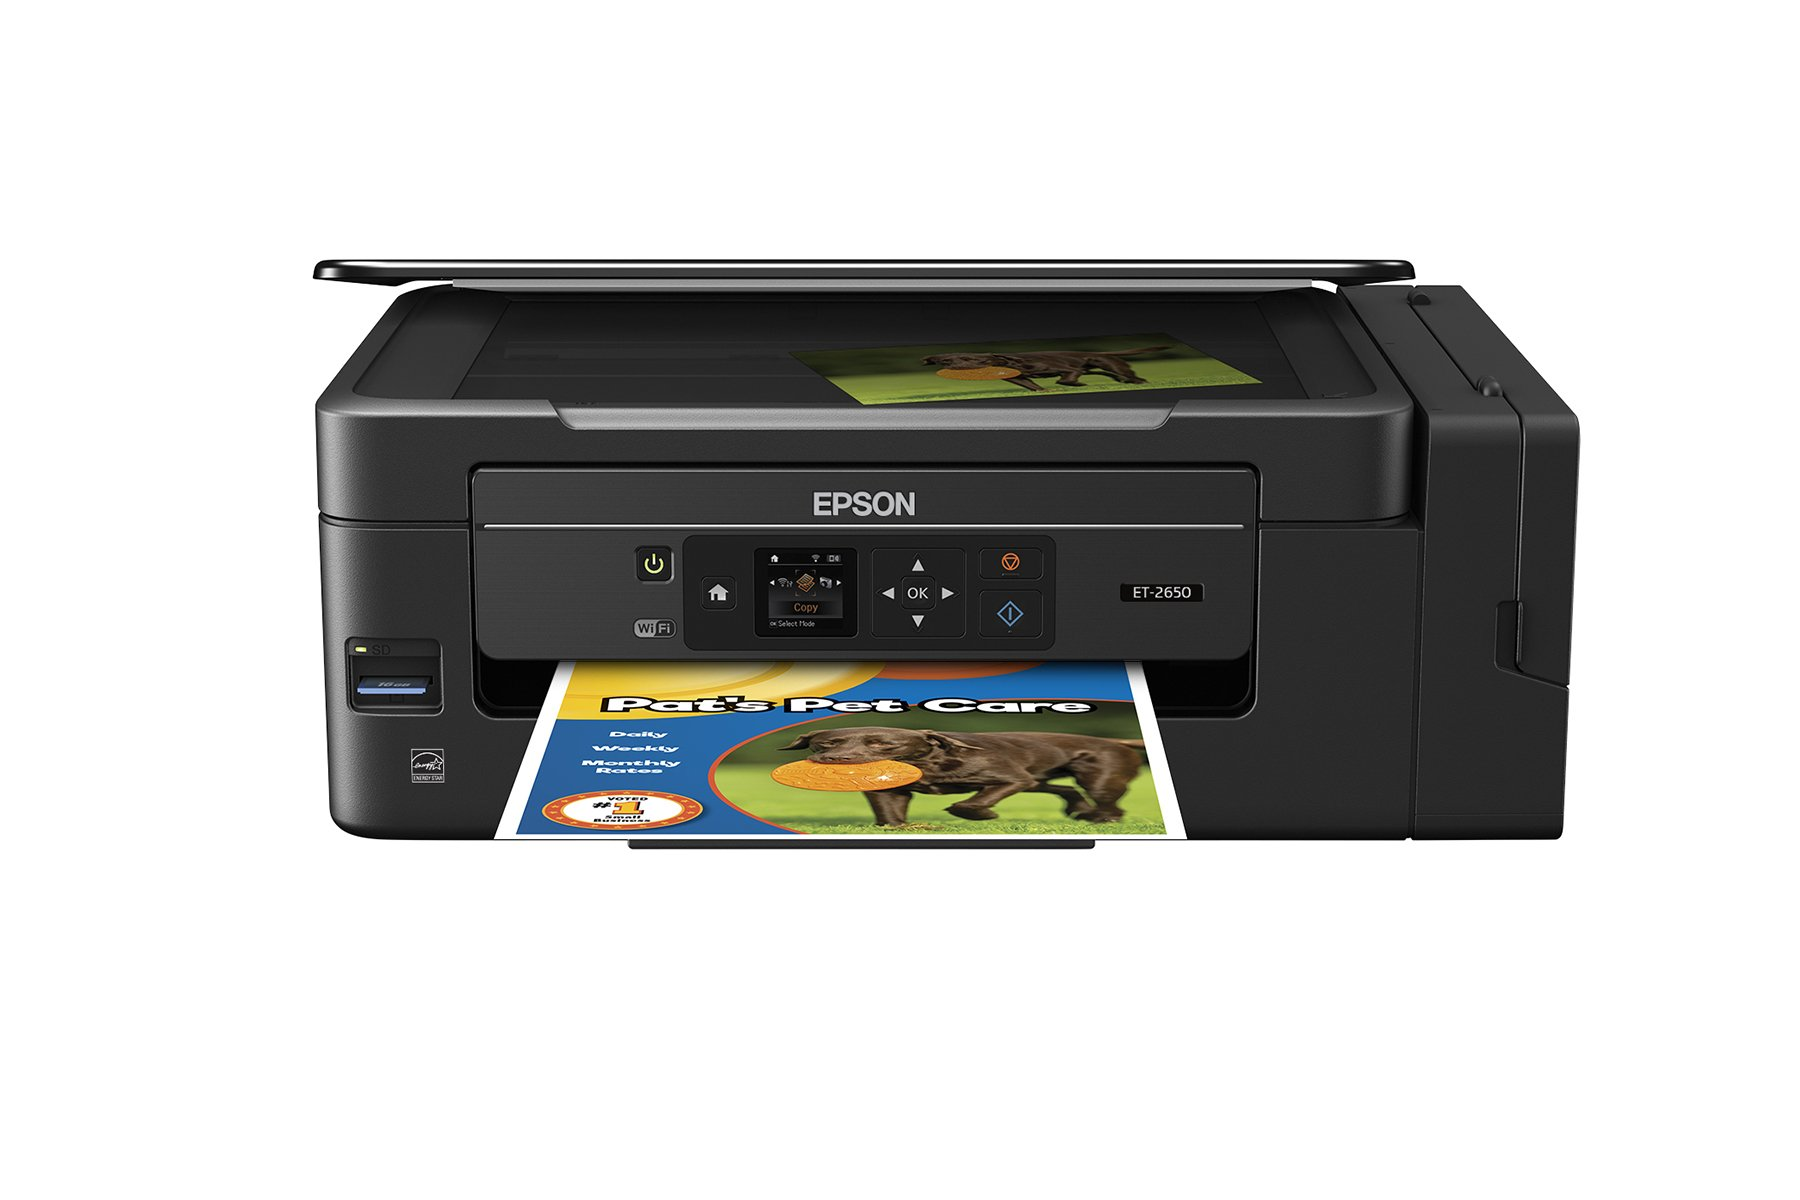 Epson Expression ET-2650 EcoTank Wireless Color All-in-One Supertank Printer with Scanner and Copier by Epson